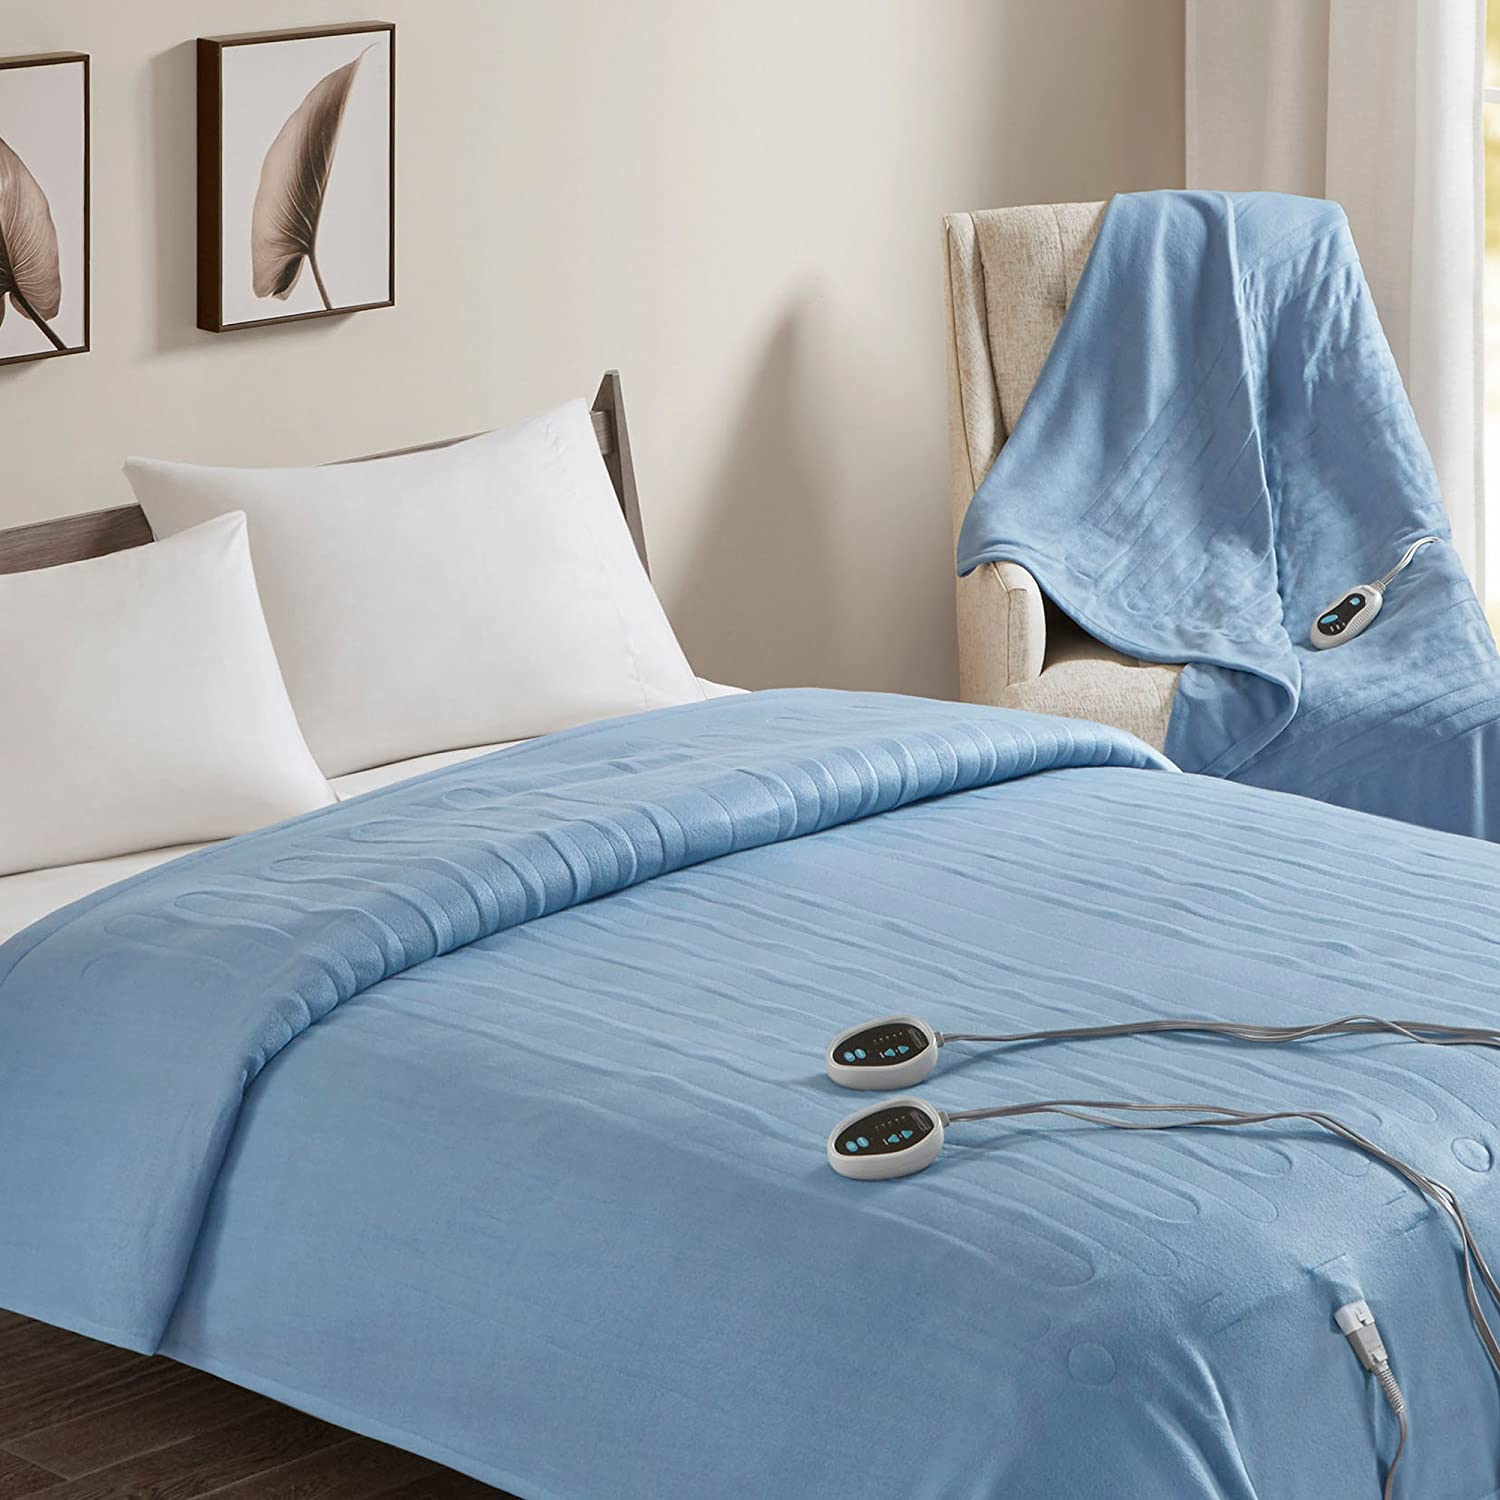 Beautyrest Fleece 2 Piece Electric Blanket Combo Ultra Warm and Soft Heated Throws Bedding Set with Auto Shutoff, Queen, Blue